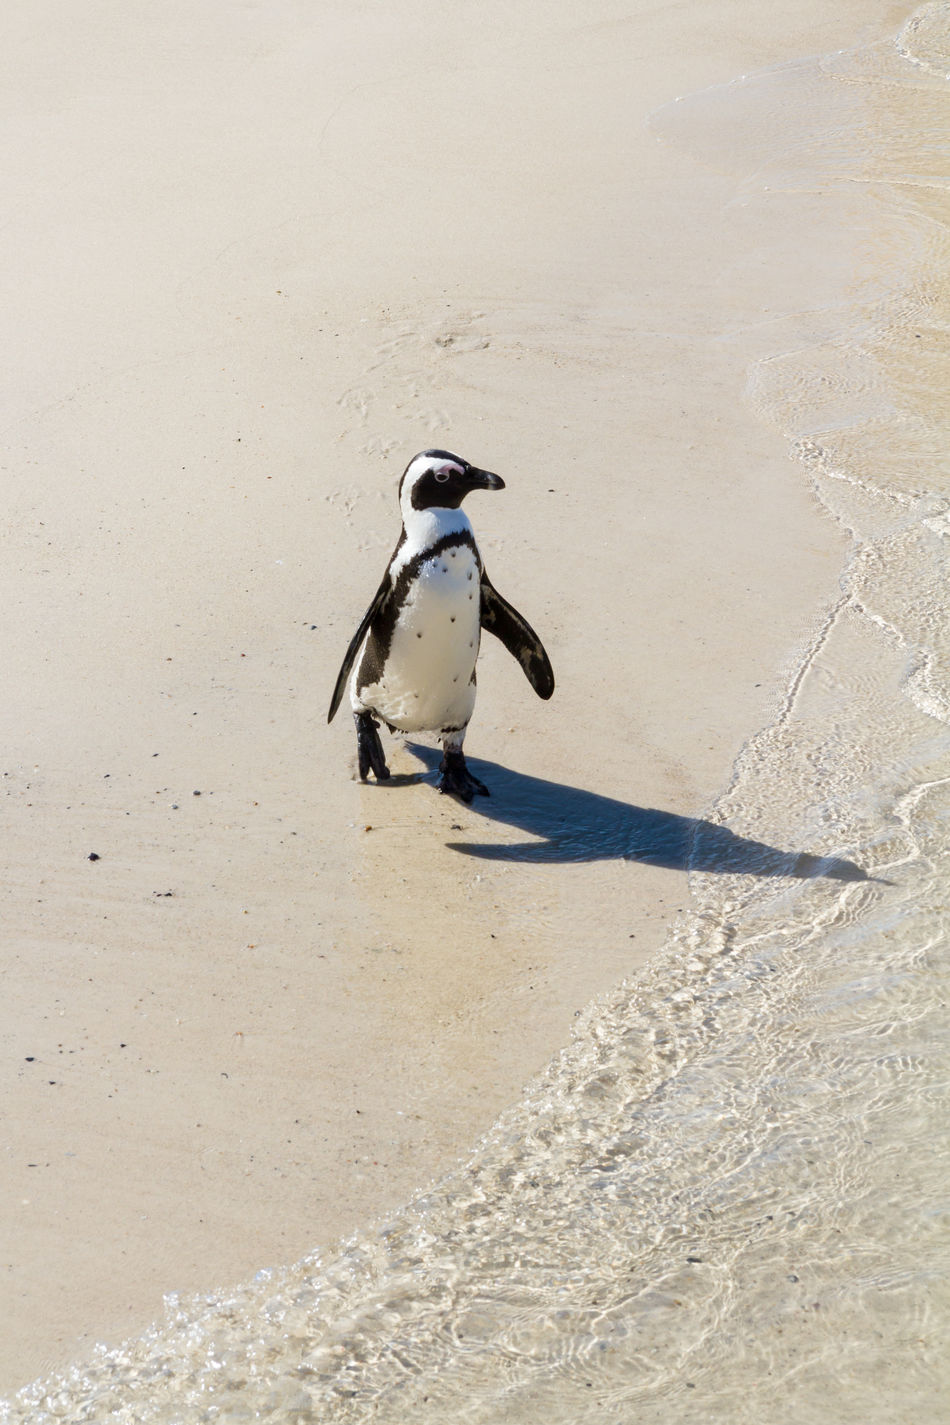 An African Penguin on the Beach African Penguin Animal Themes Animal Wildlife Animals In The Wild Aquatic Beach Bird Boulder Beach Day Flightless Bird Jackass Penguin Native Nature No People One Animal Outdoors Penguin Sand Shadow Simons Town Vertical Waddling Walking Around Wandering Zoology